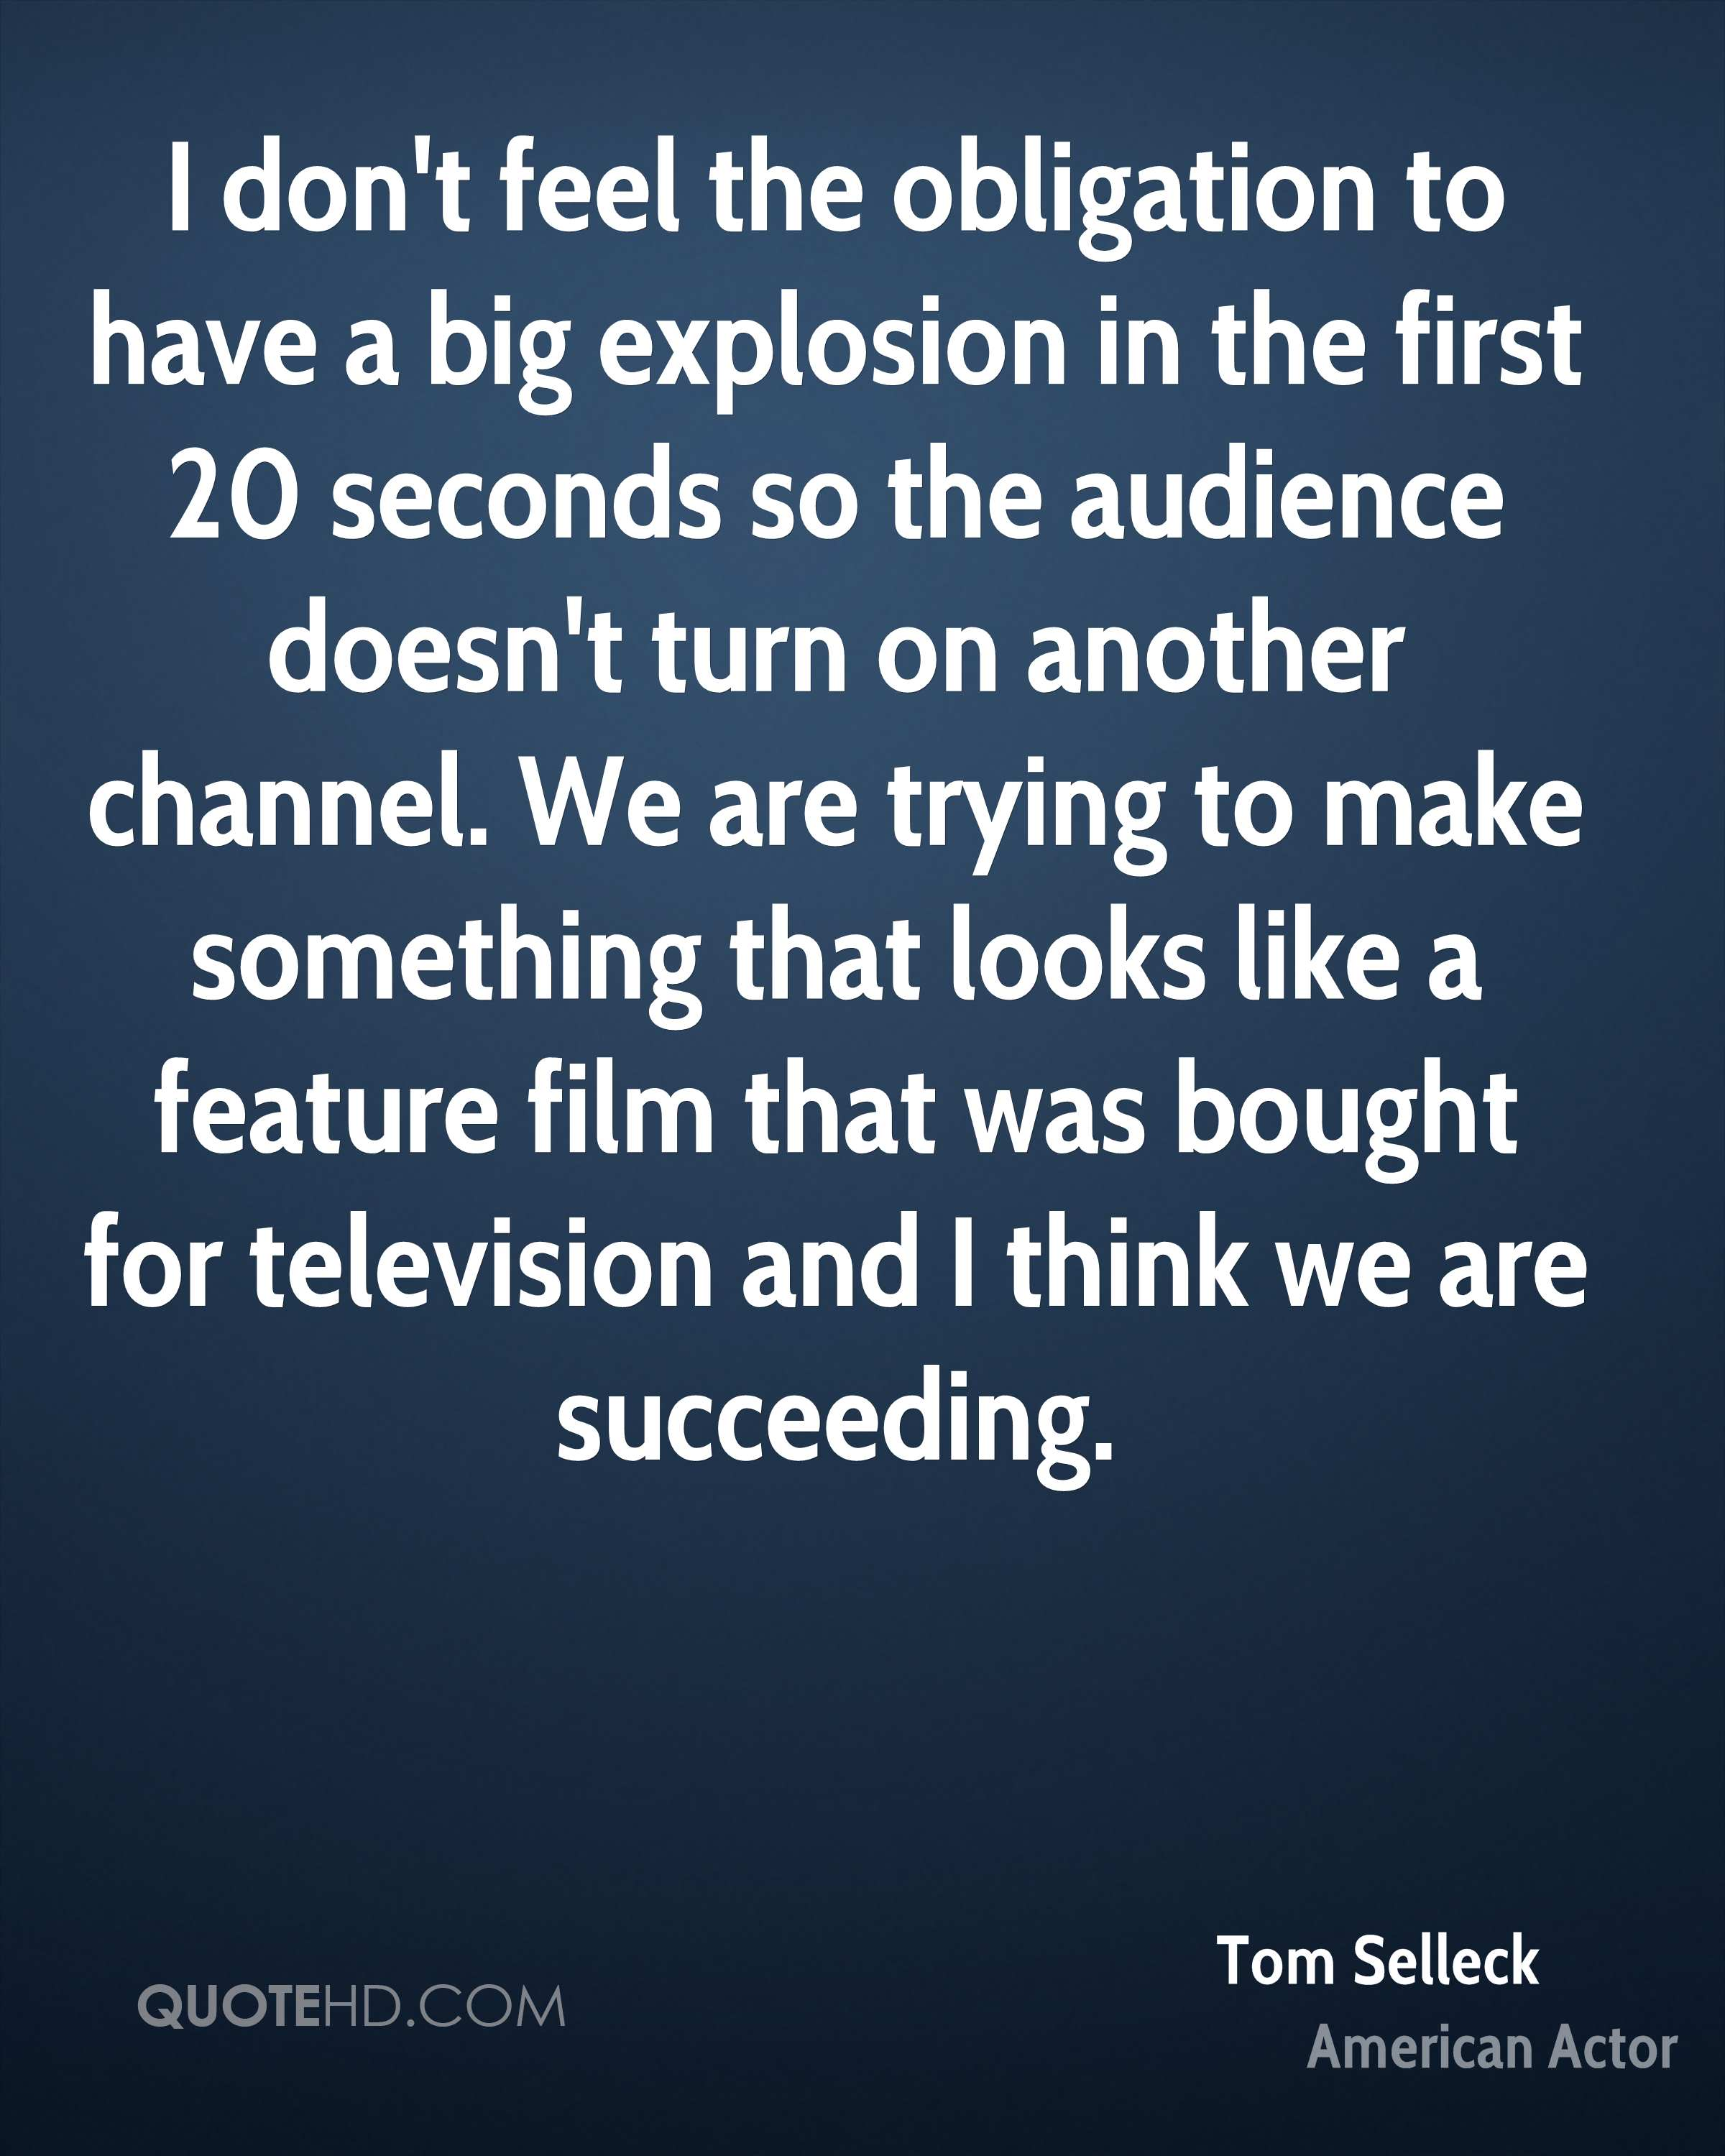 I don't feel the obligation to have a big explosion in the first 20 seconds so the audience doesn't turn on another channel. We are trying to make something that looks like a feature film that was bought for television and I think we are succeeding.